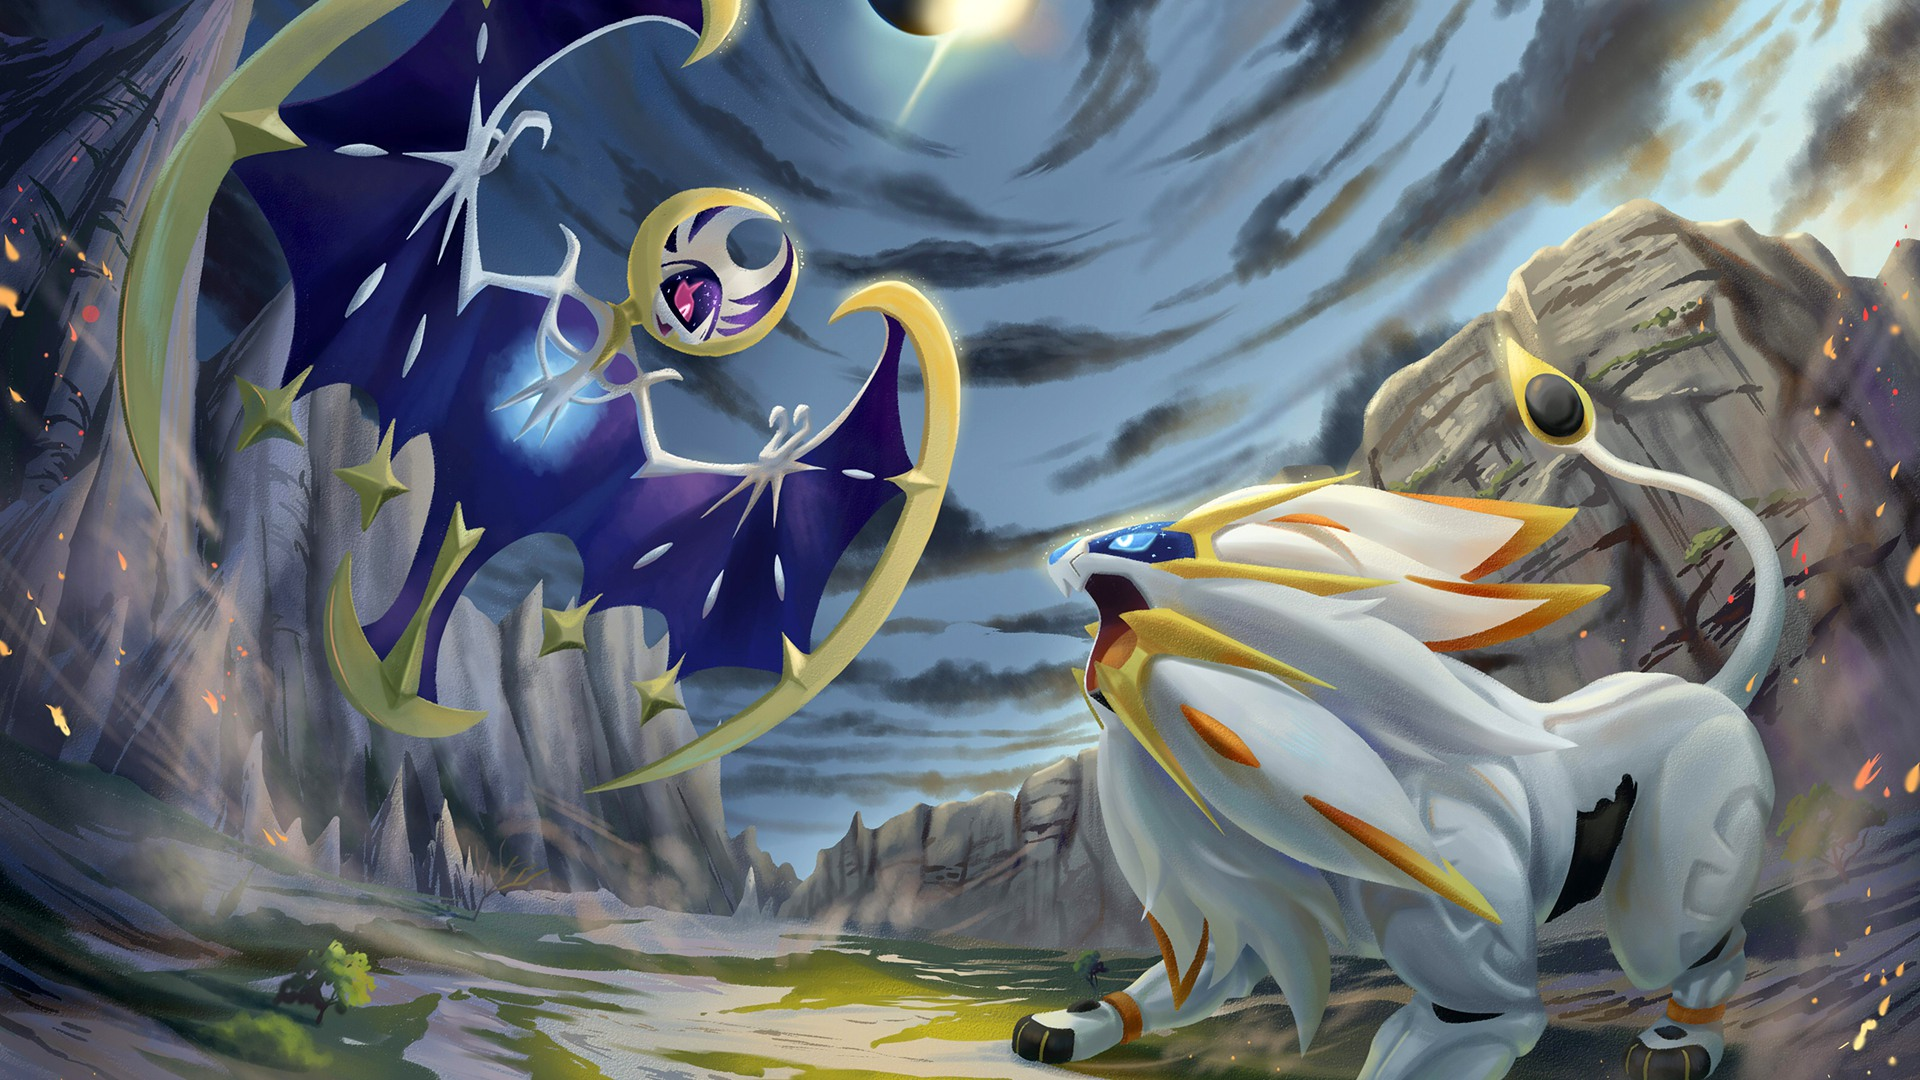 Pokemon Sun And Moon Wallpaper Hd Posted By Samantha Tremblay